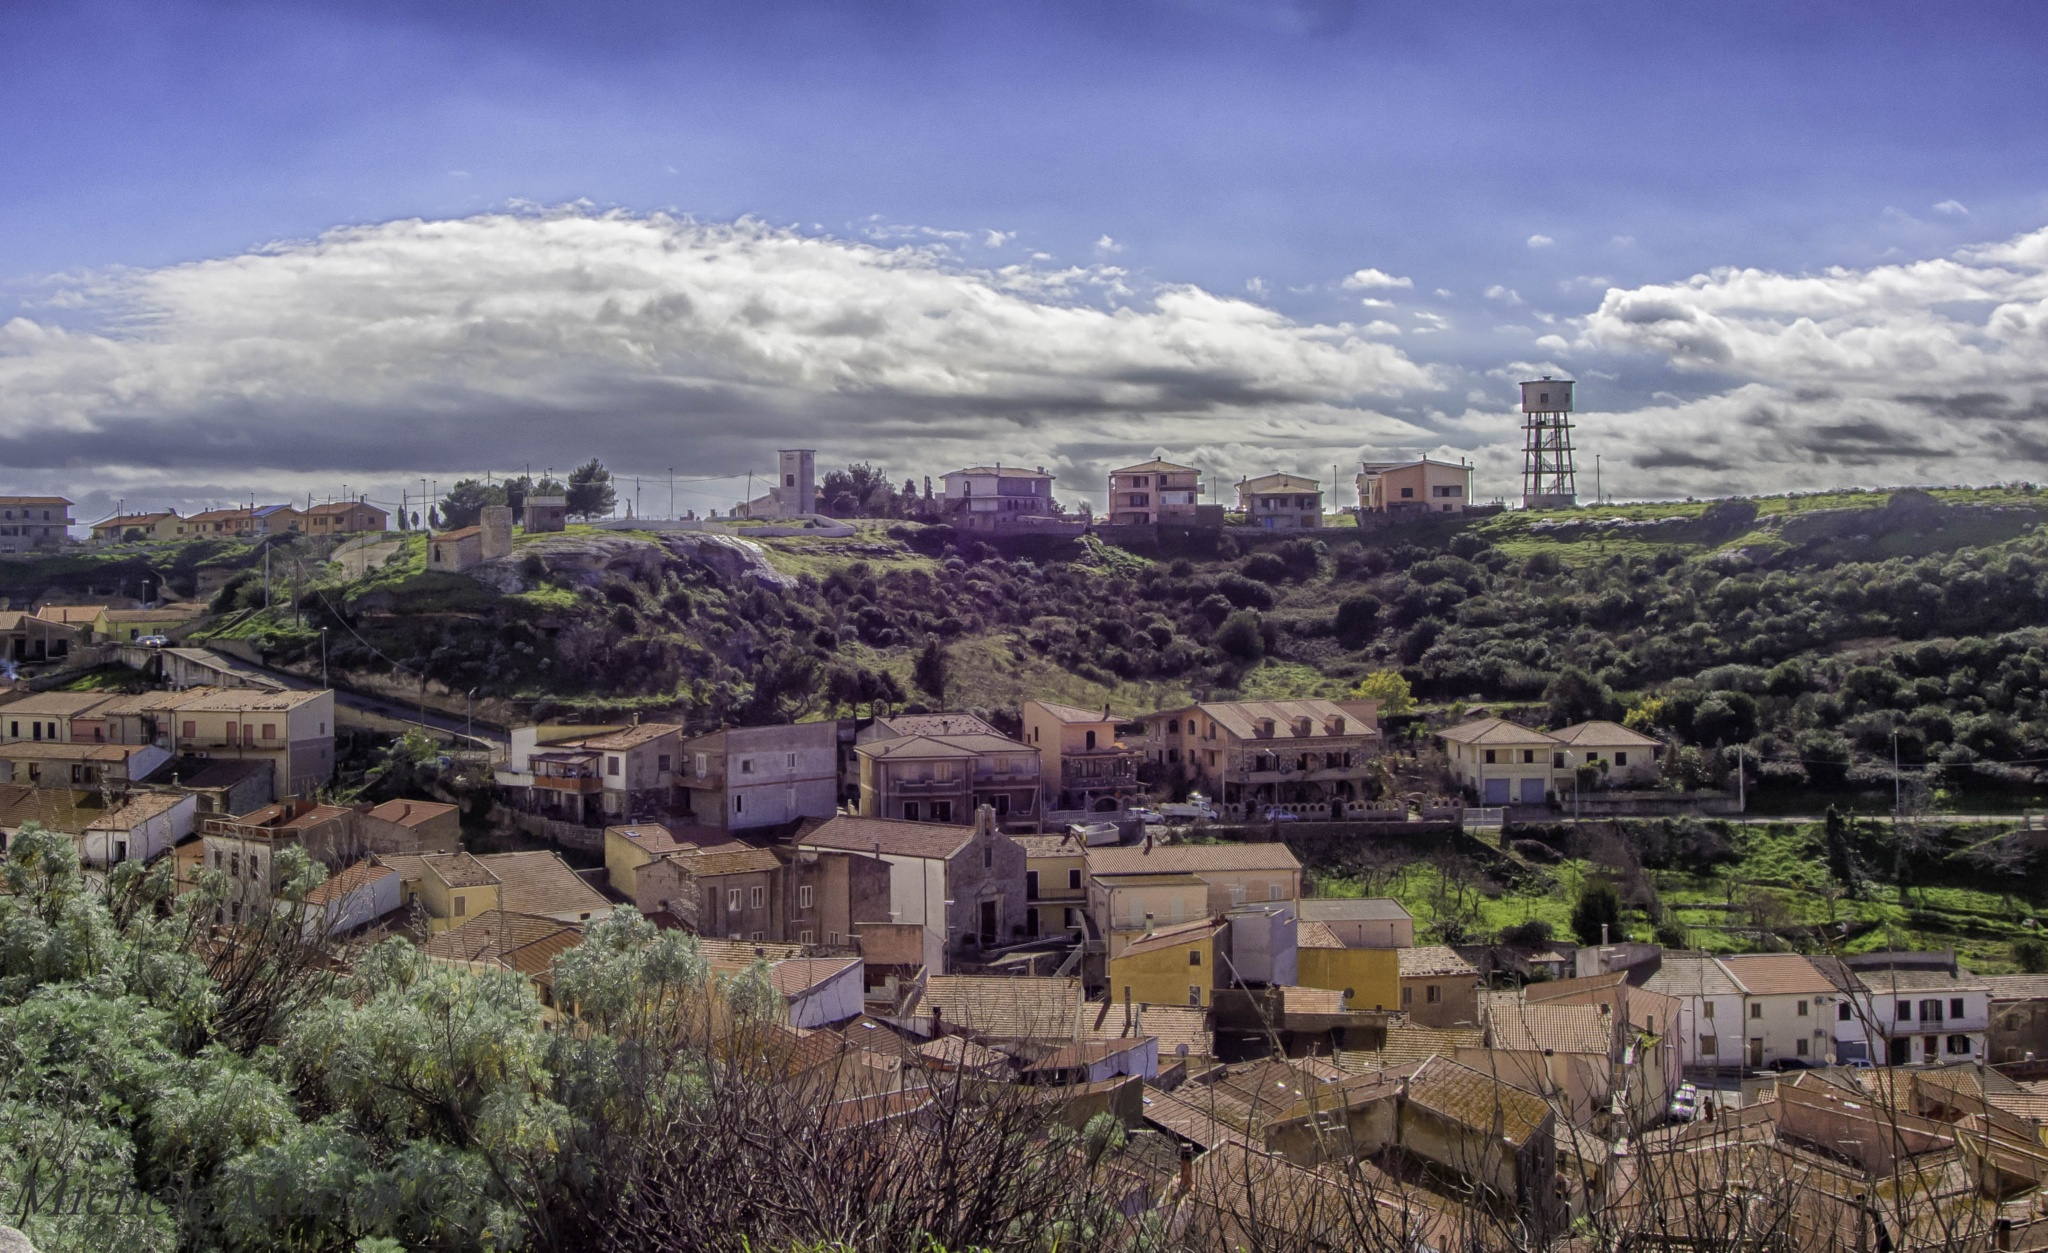 Panorama by Michele Pinna Marras